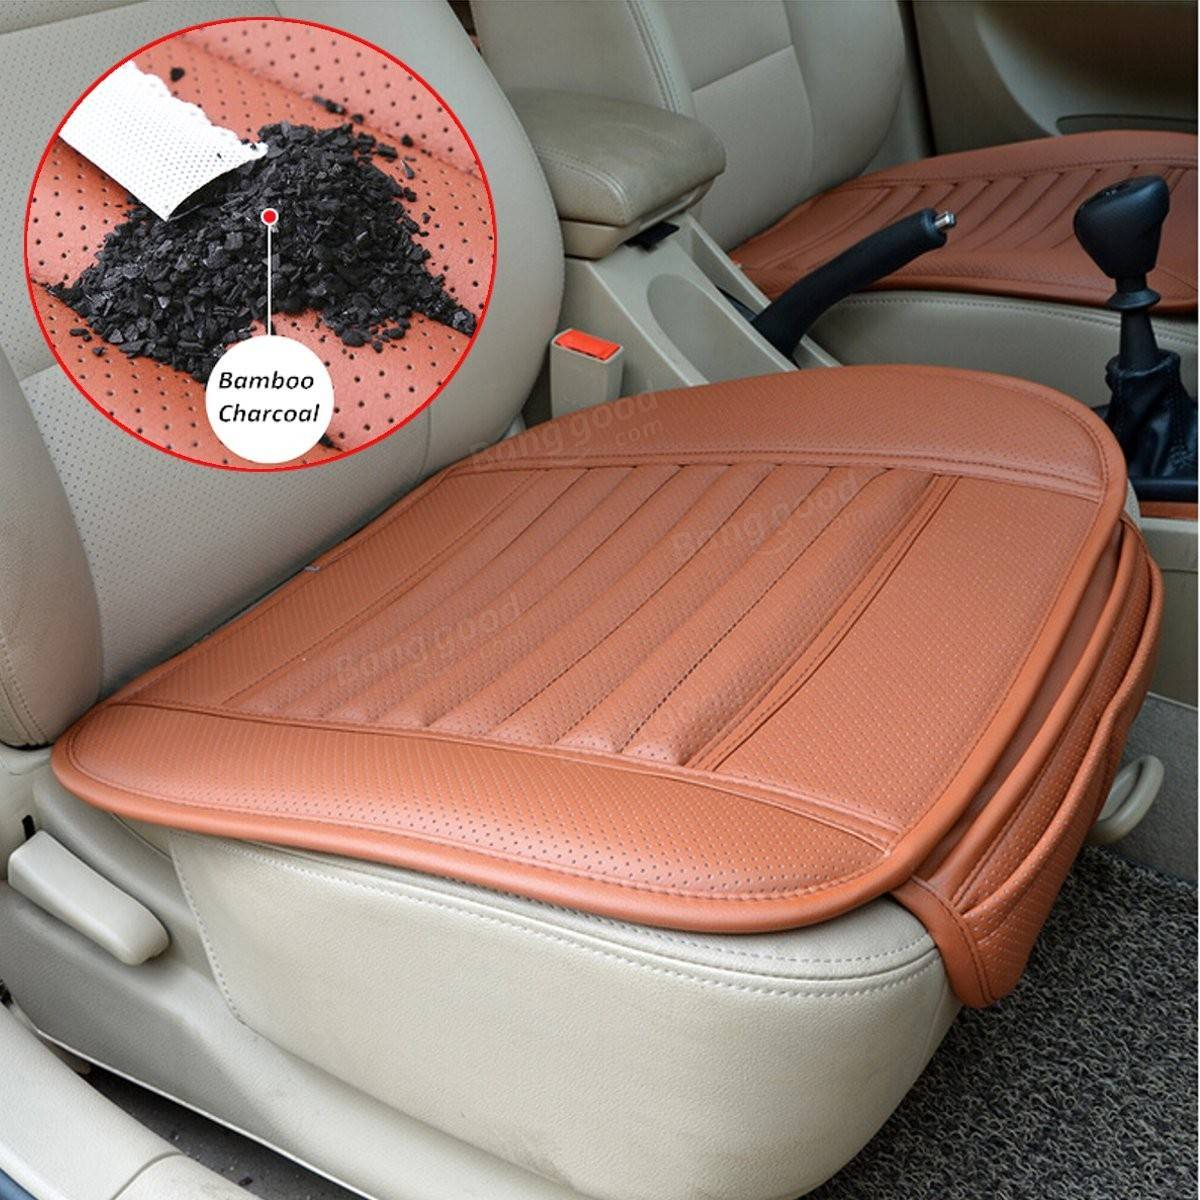 Universal Seat Pad PU Leather Bamboo Charcoal Car Cushions